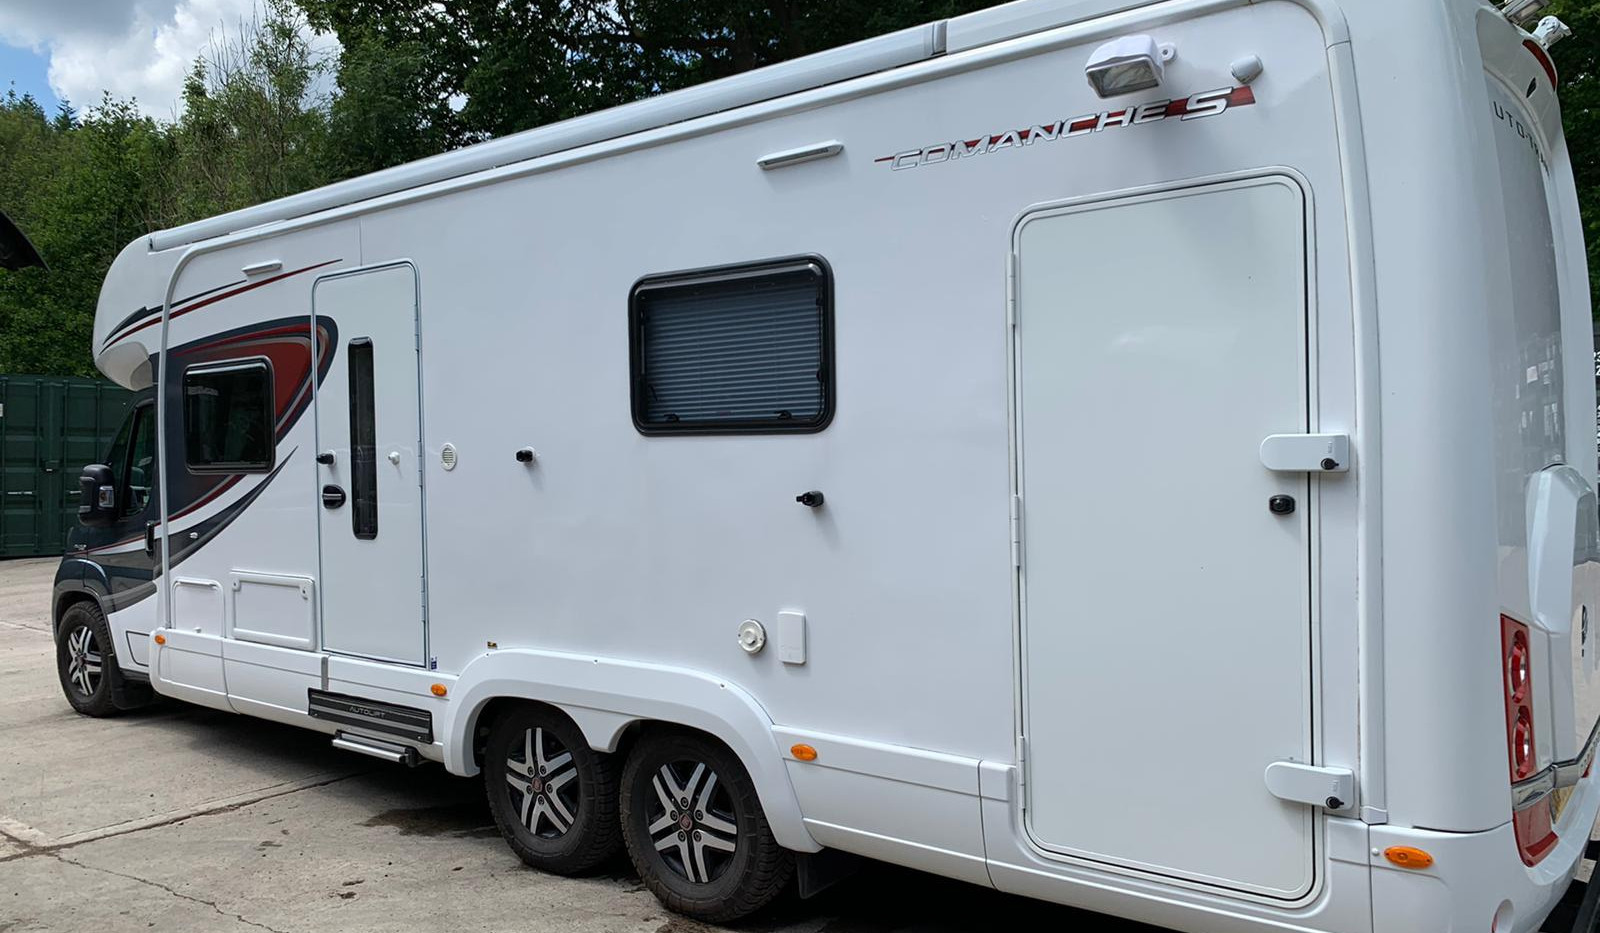 2018 LIV. AutoTrail Frontier Comanche I Wheelchair Accessible Motorhome I Nuneaton I Warwickshire I UK